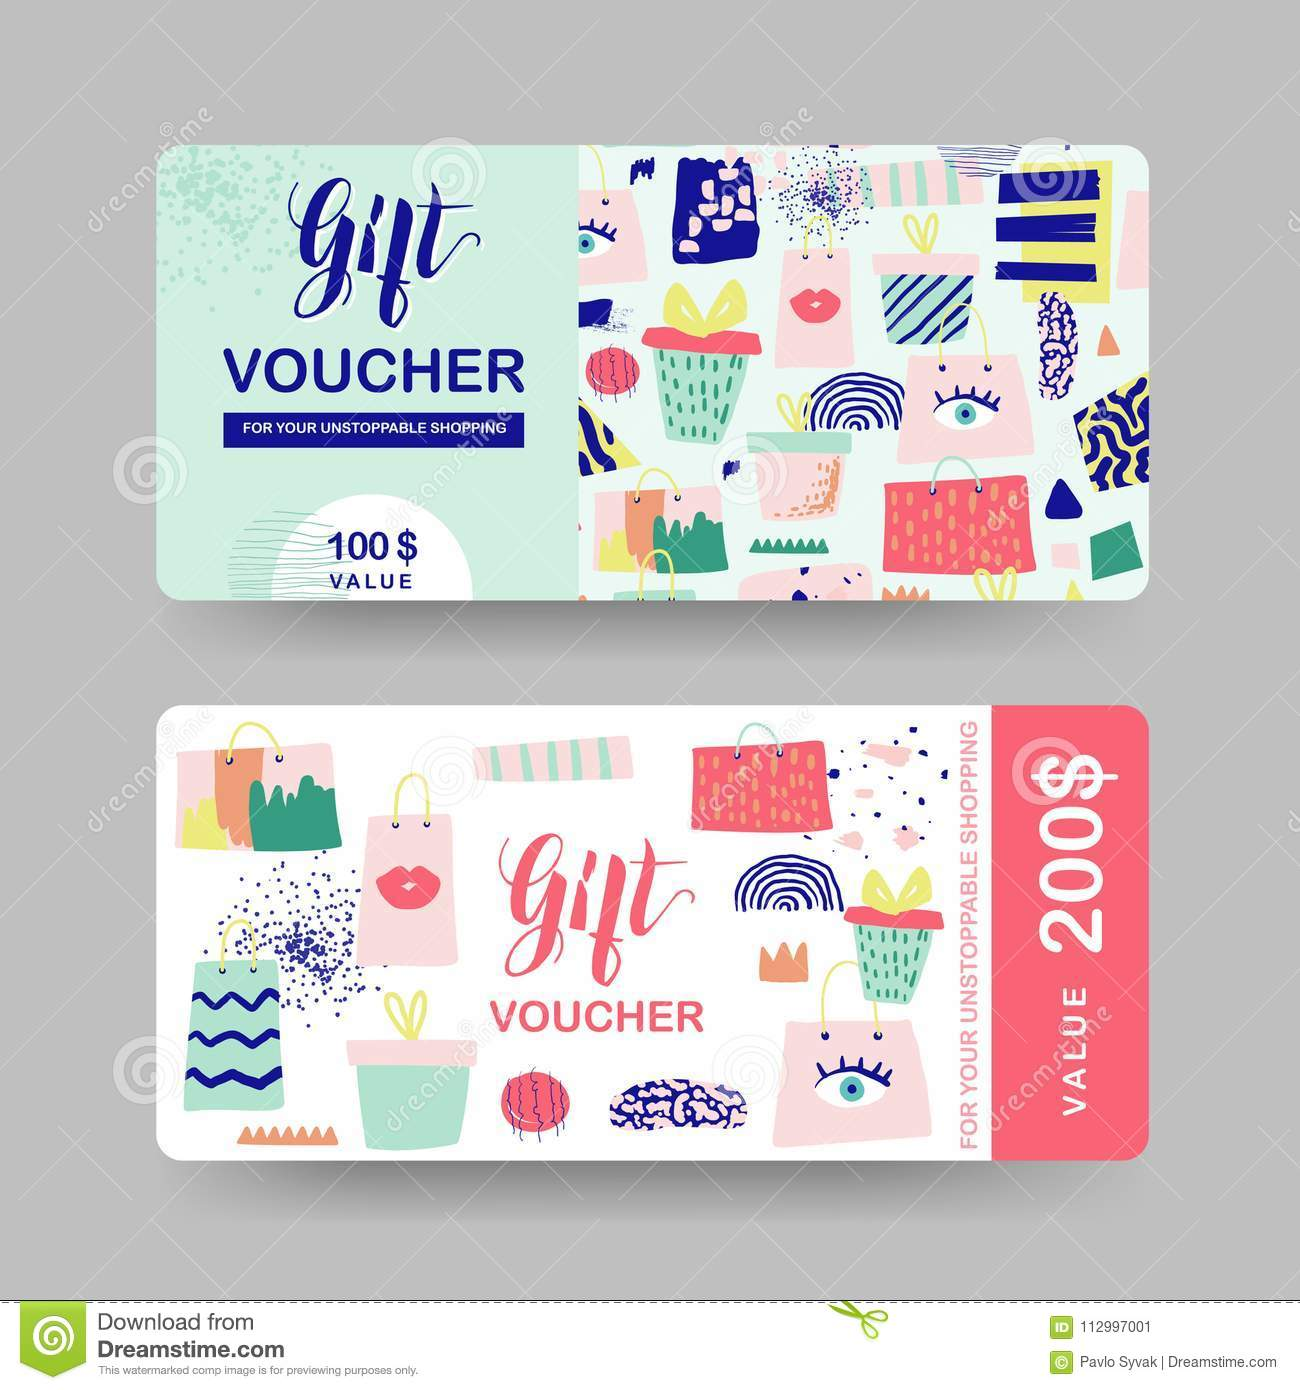 Gift Voucher Templates. Discount Coupon Certificate Card with Shopping Bags and Fashion Elements. Sale Promotion, Banner